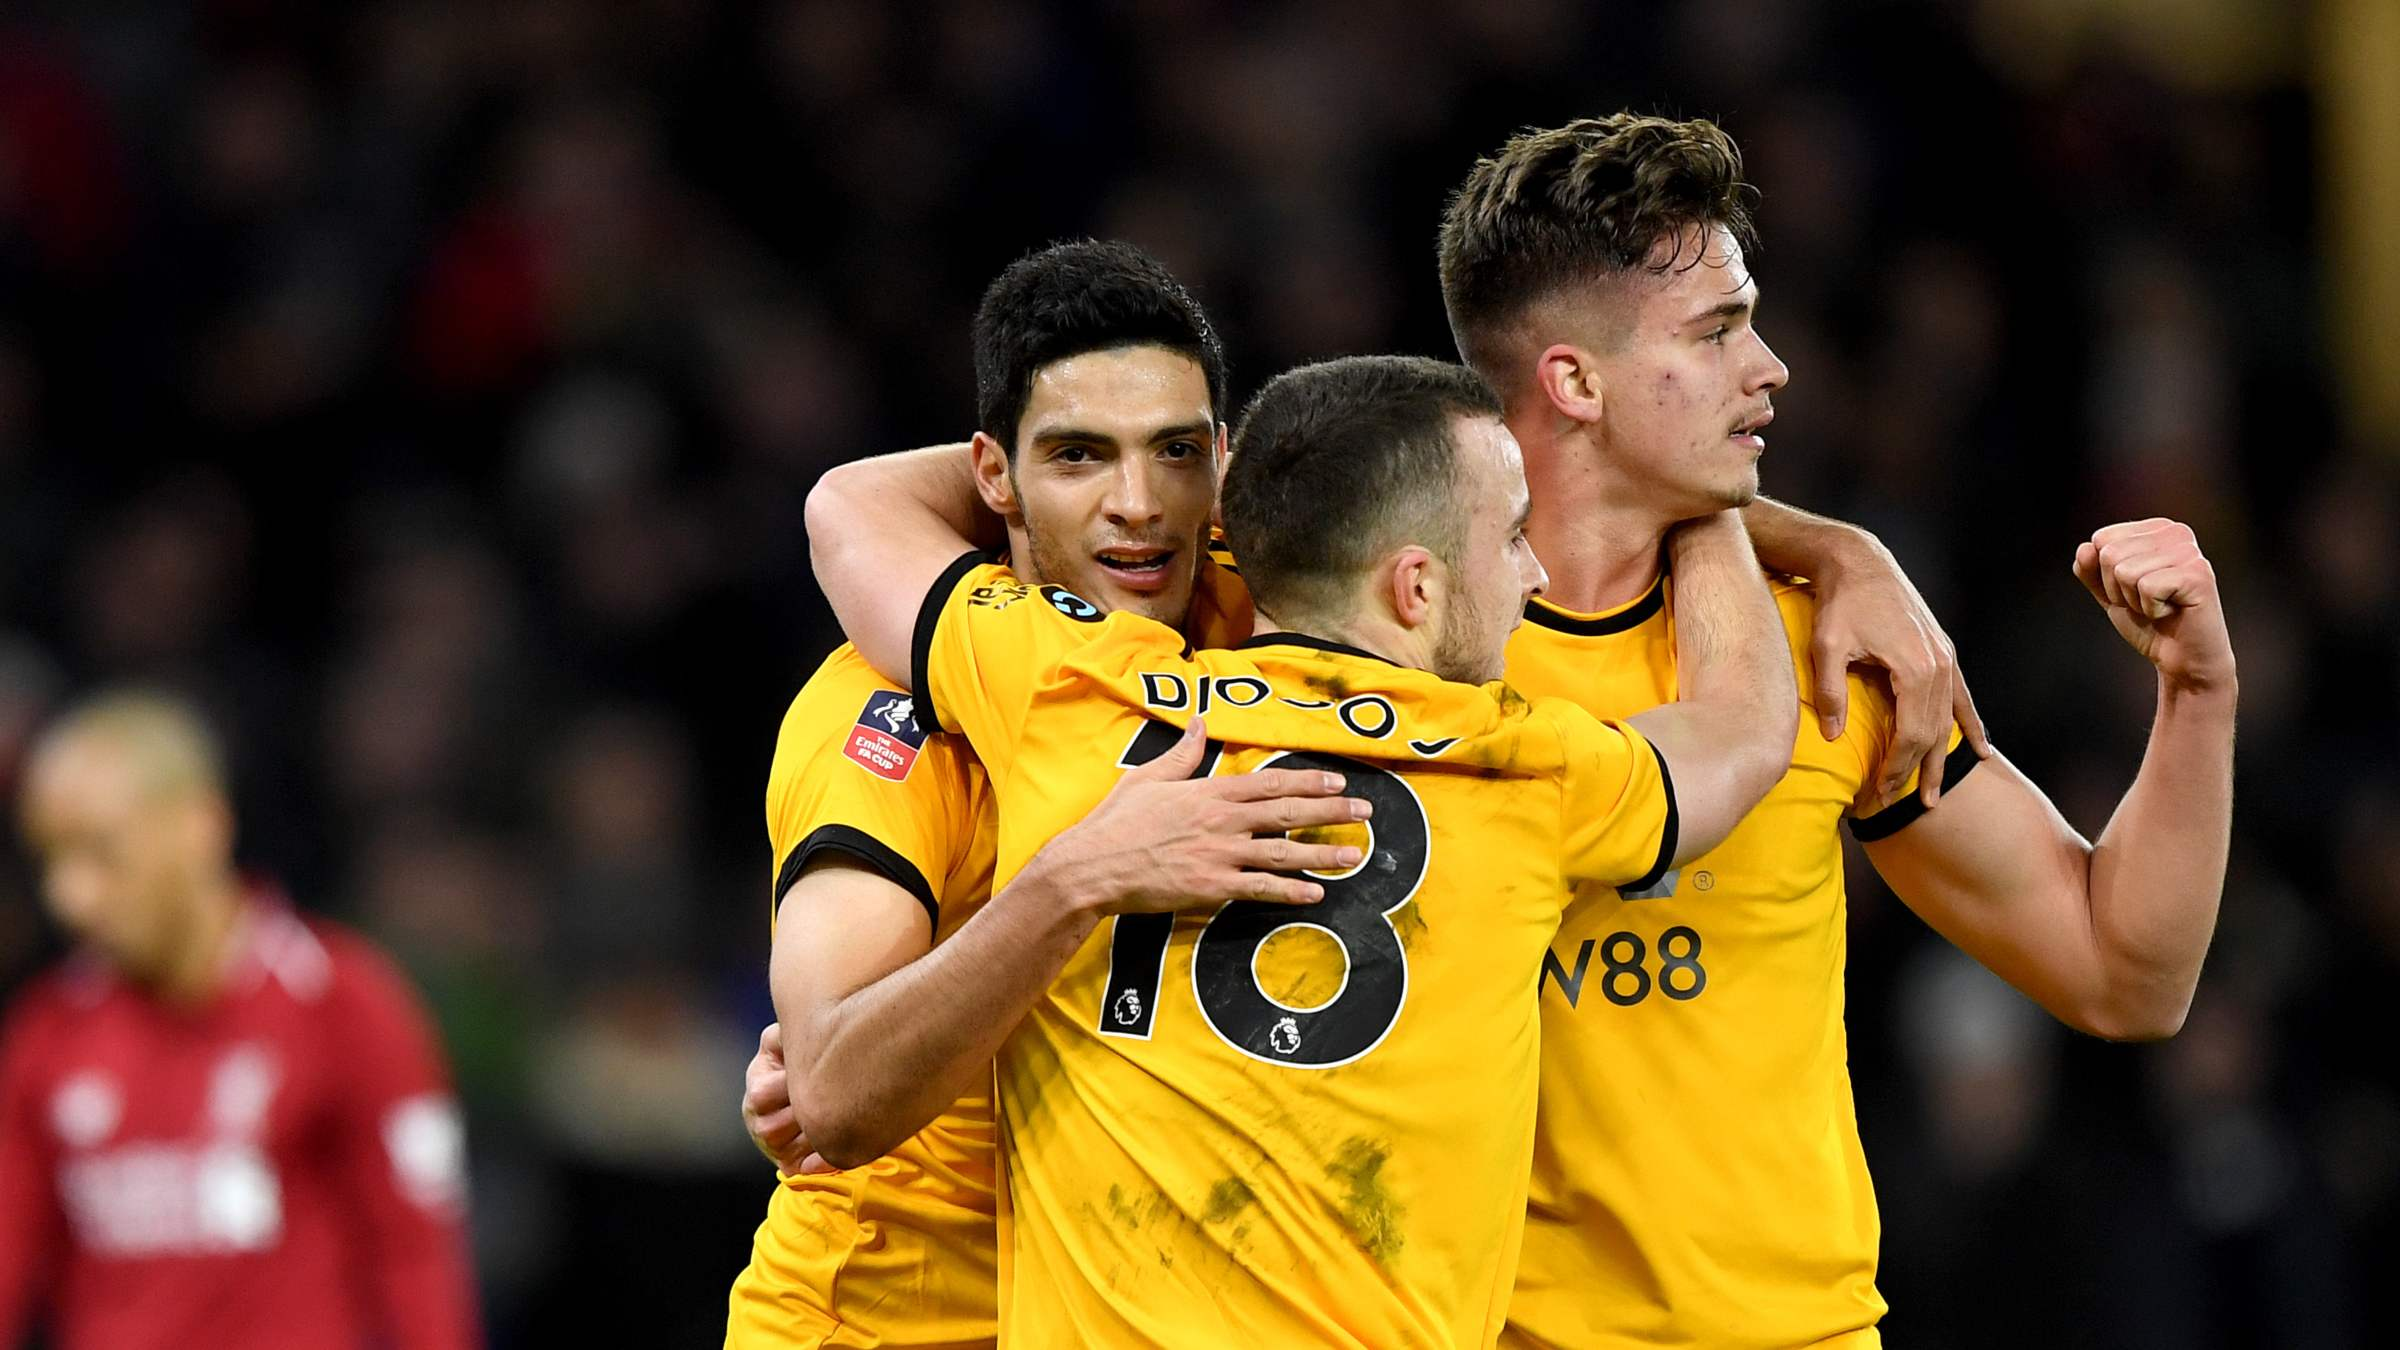 WOLVES SET TO MAKE 40 YEARS HISTORIC EUROPA LEAGUE APPEARANCE